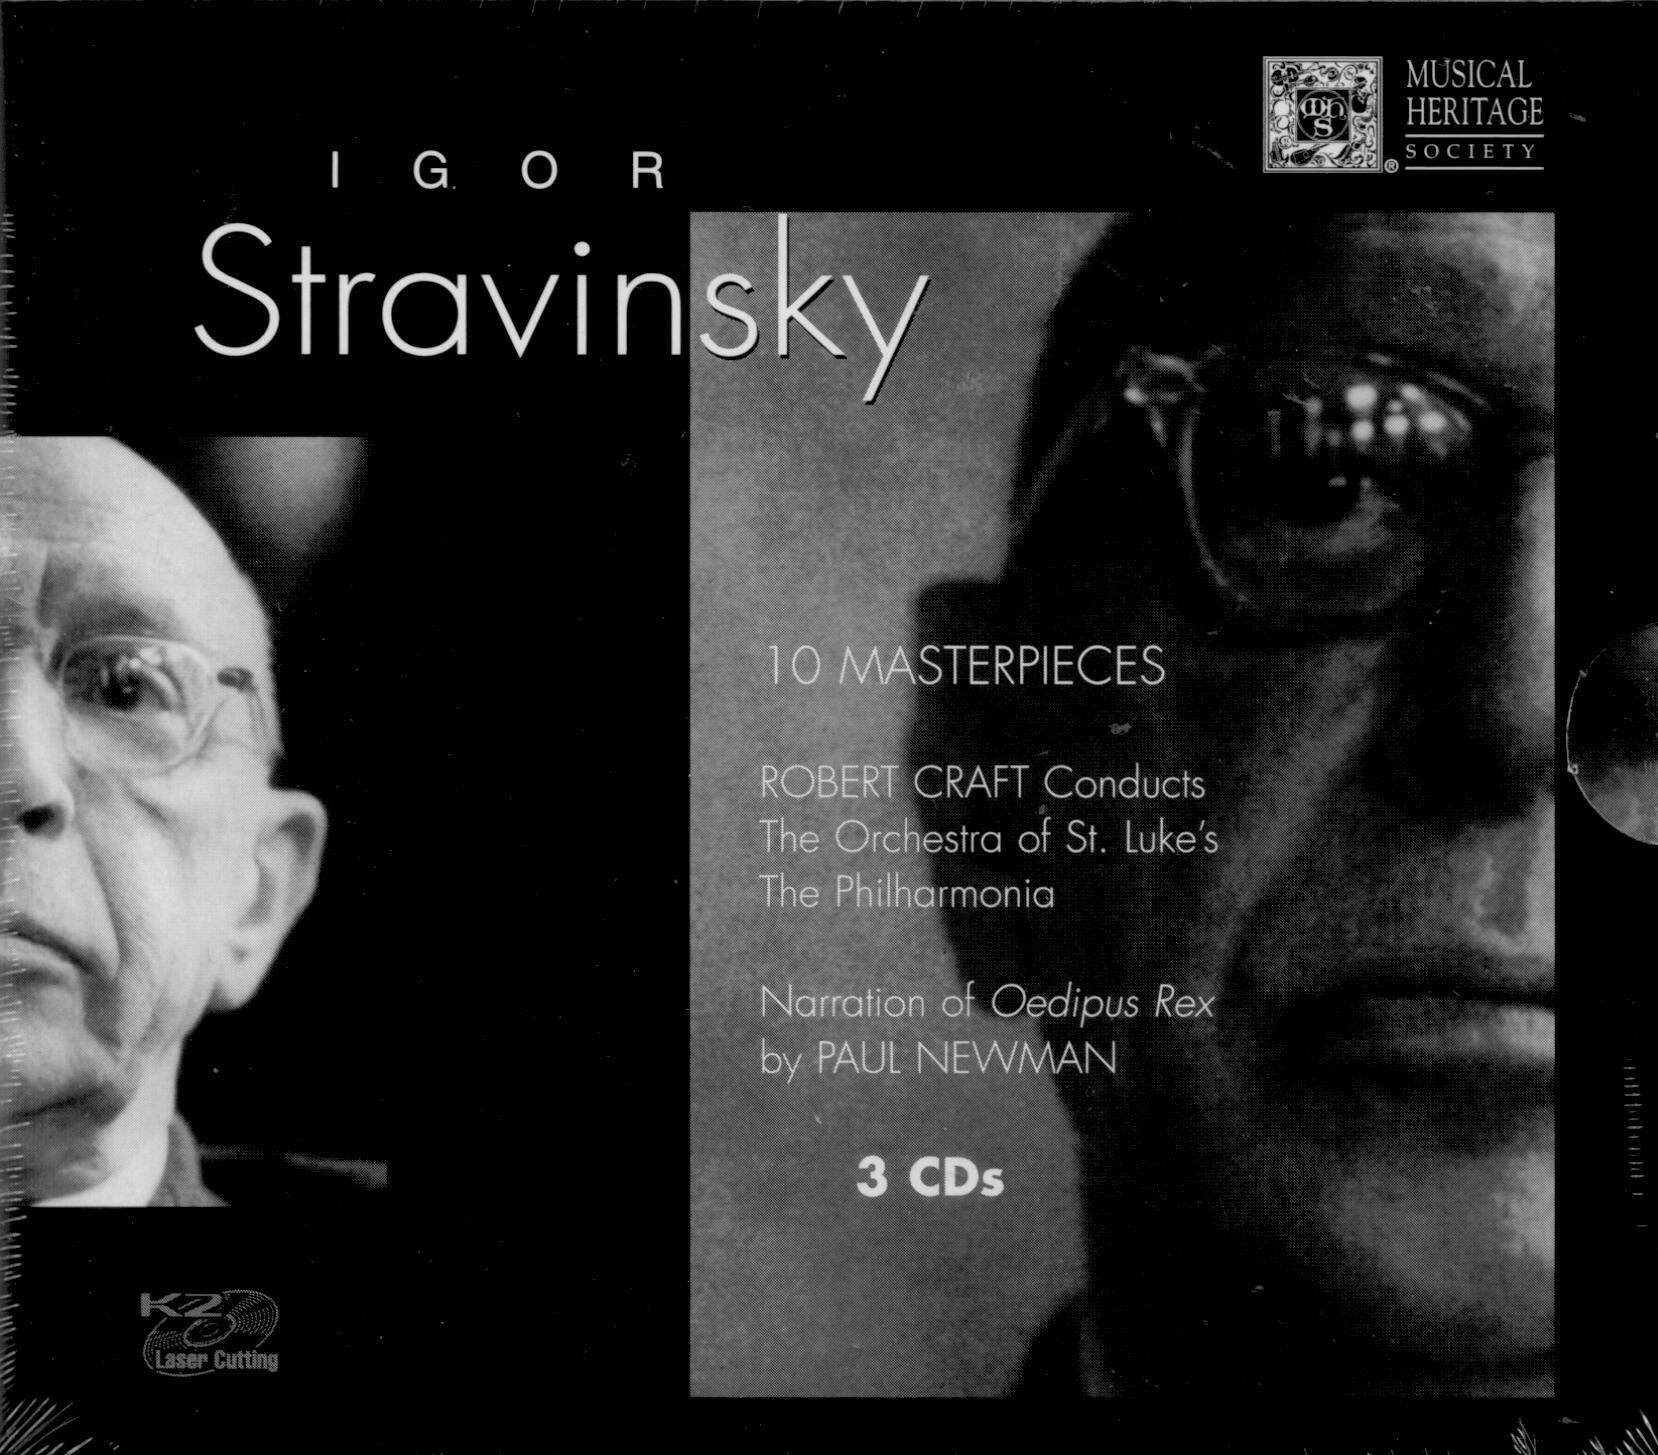 Stravinsky: 10 Masterpieces: Symphony in 3 Mvts; Fanfare for a New Theatre; Fanfare for 3 Trpts; Oedipus Rex; Apollo Pas de Deux; Requiem Canticles; Symphony of Psalms; Rite of Spring; Petruska; Solovei--The Nightingale by Musical Heritage Society MHS